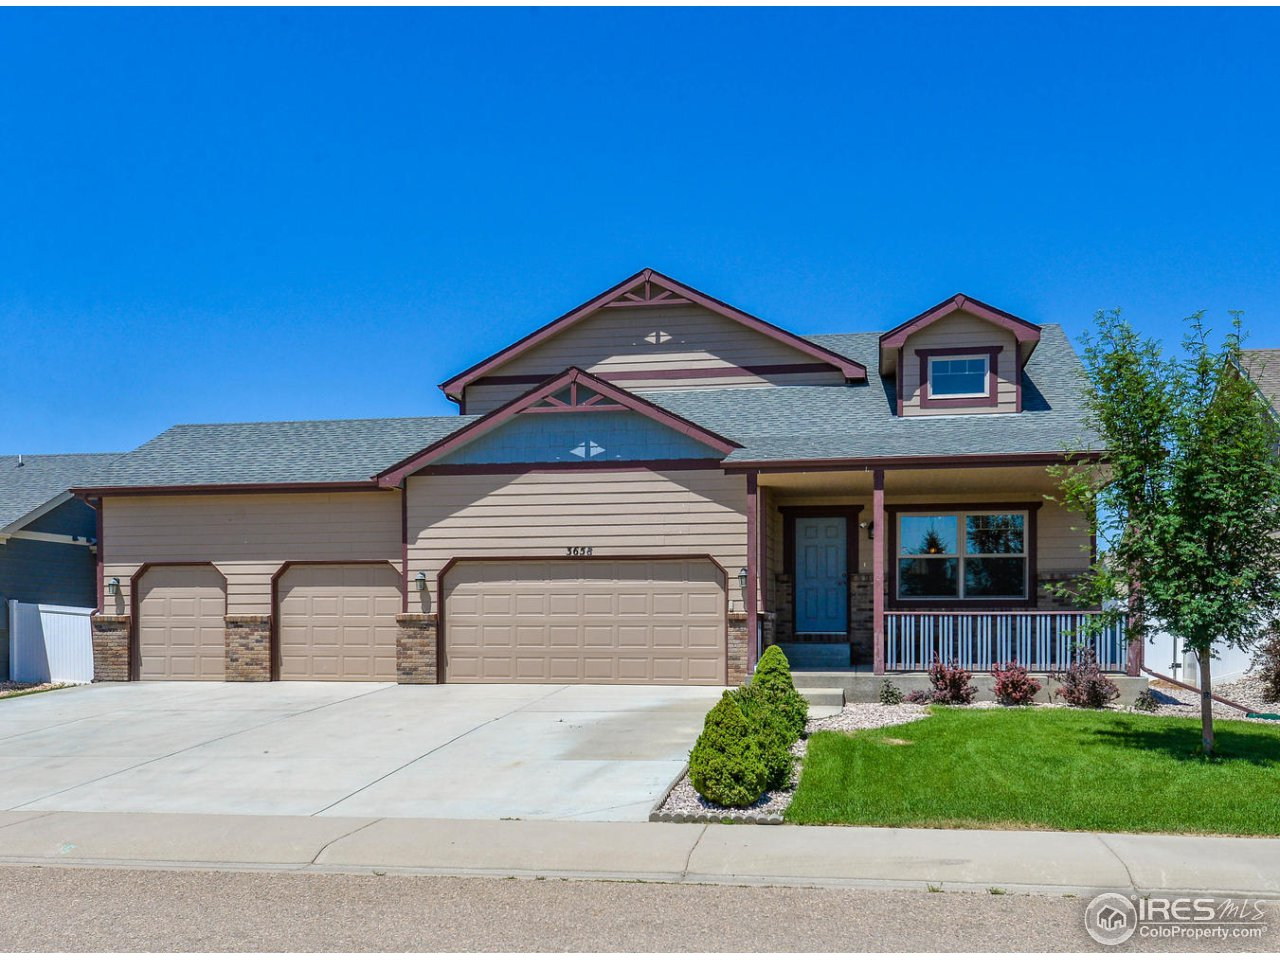 3658 Mount Hope St, Wellington, CO 80549